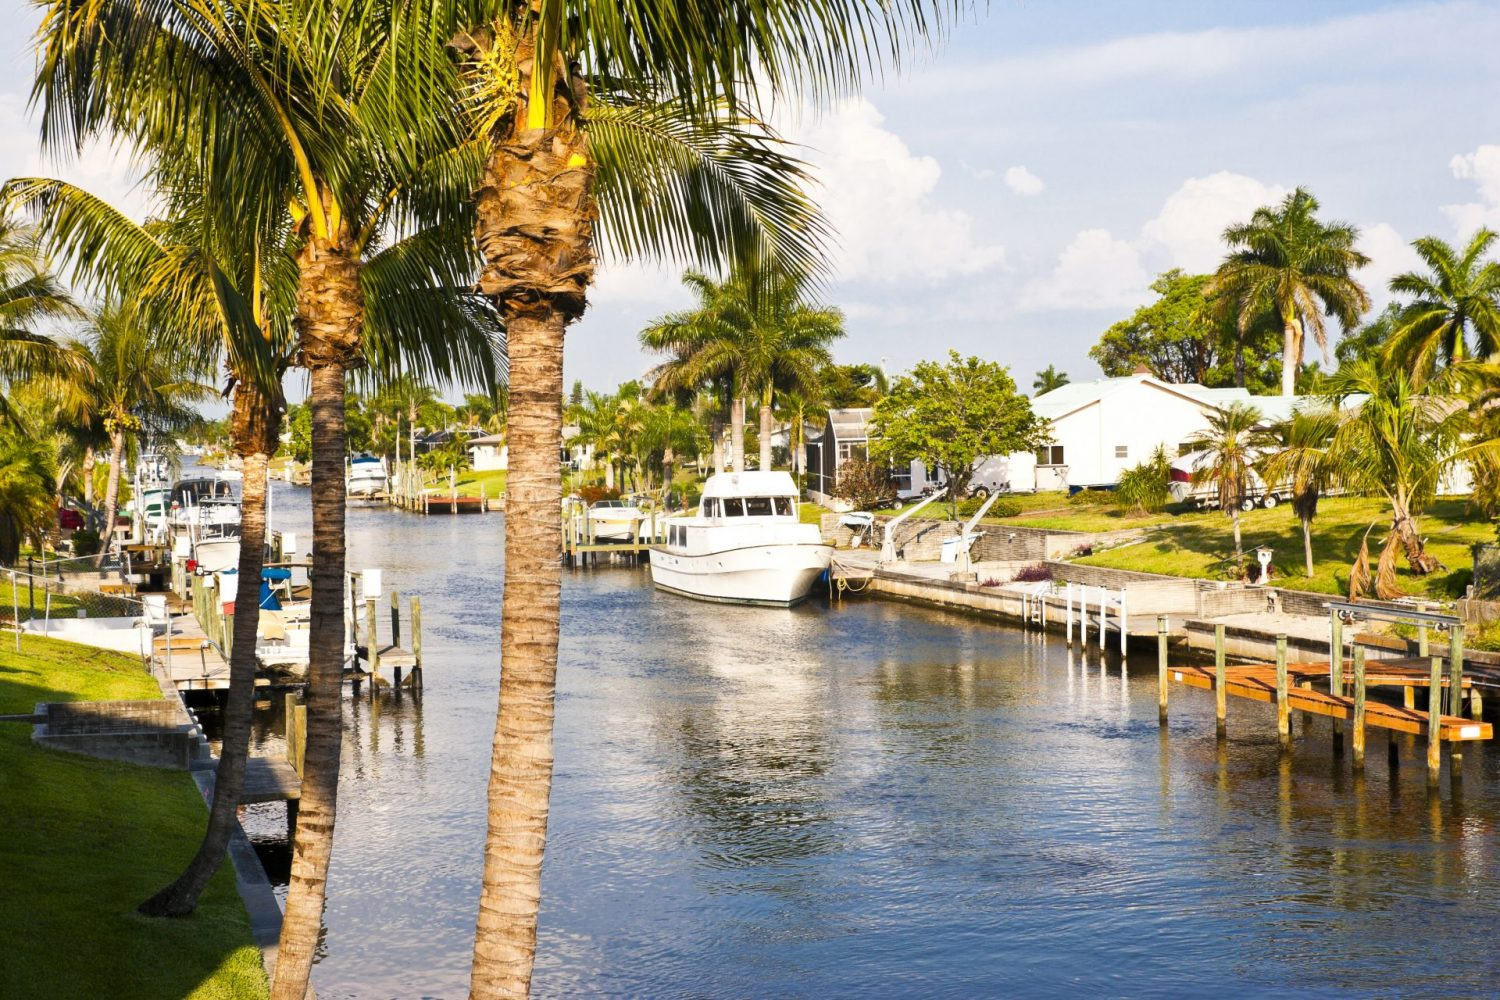 Florida living, boats docked at waterfront of luxury homes on a canal in southern Florida.